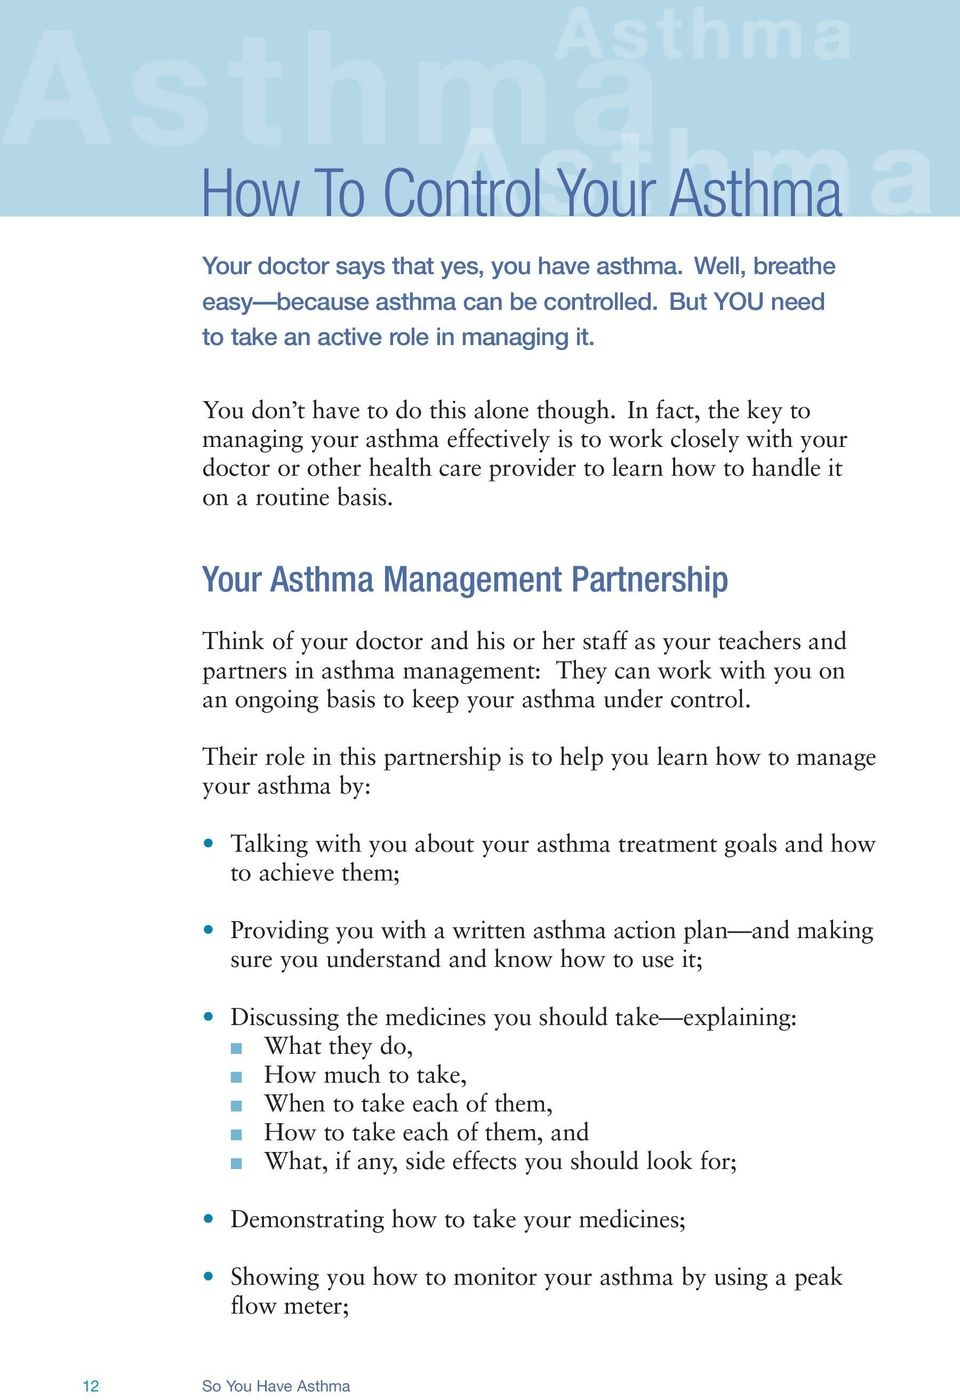 In fact, the key to managing your asthma effectively is to work closely with your doctor or other health care provider to learn how to handle it on a routine basis.